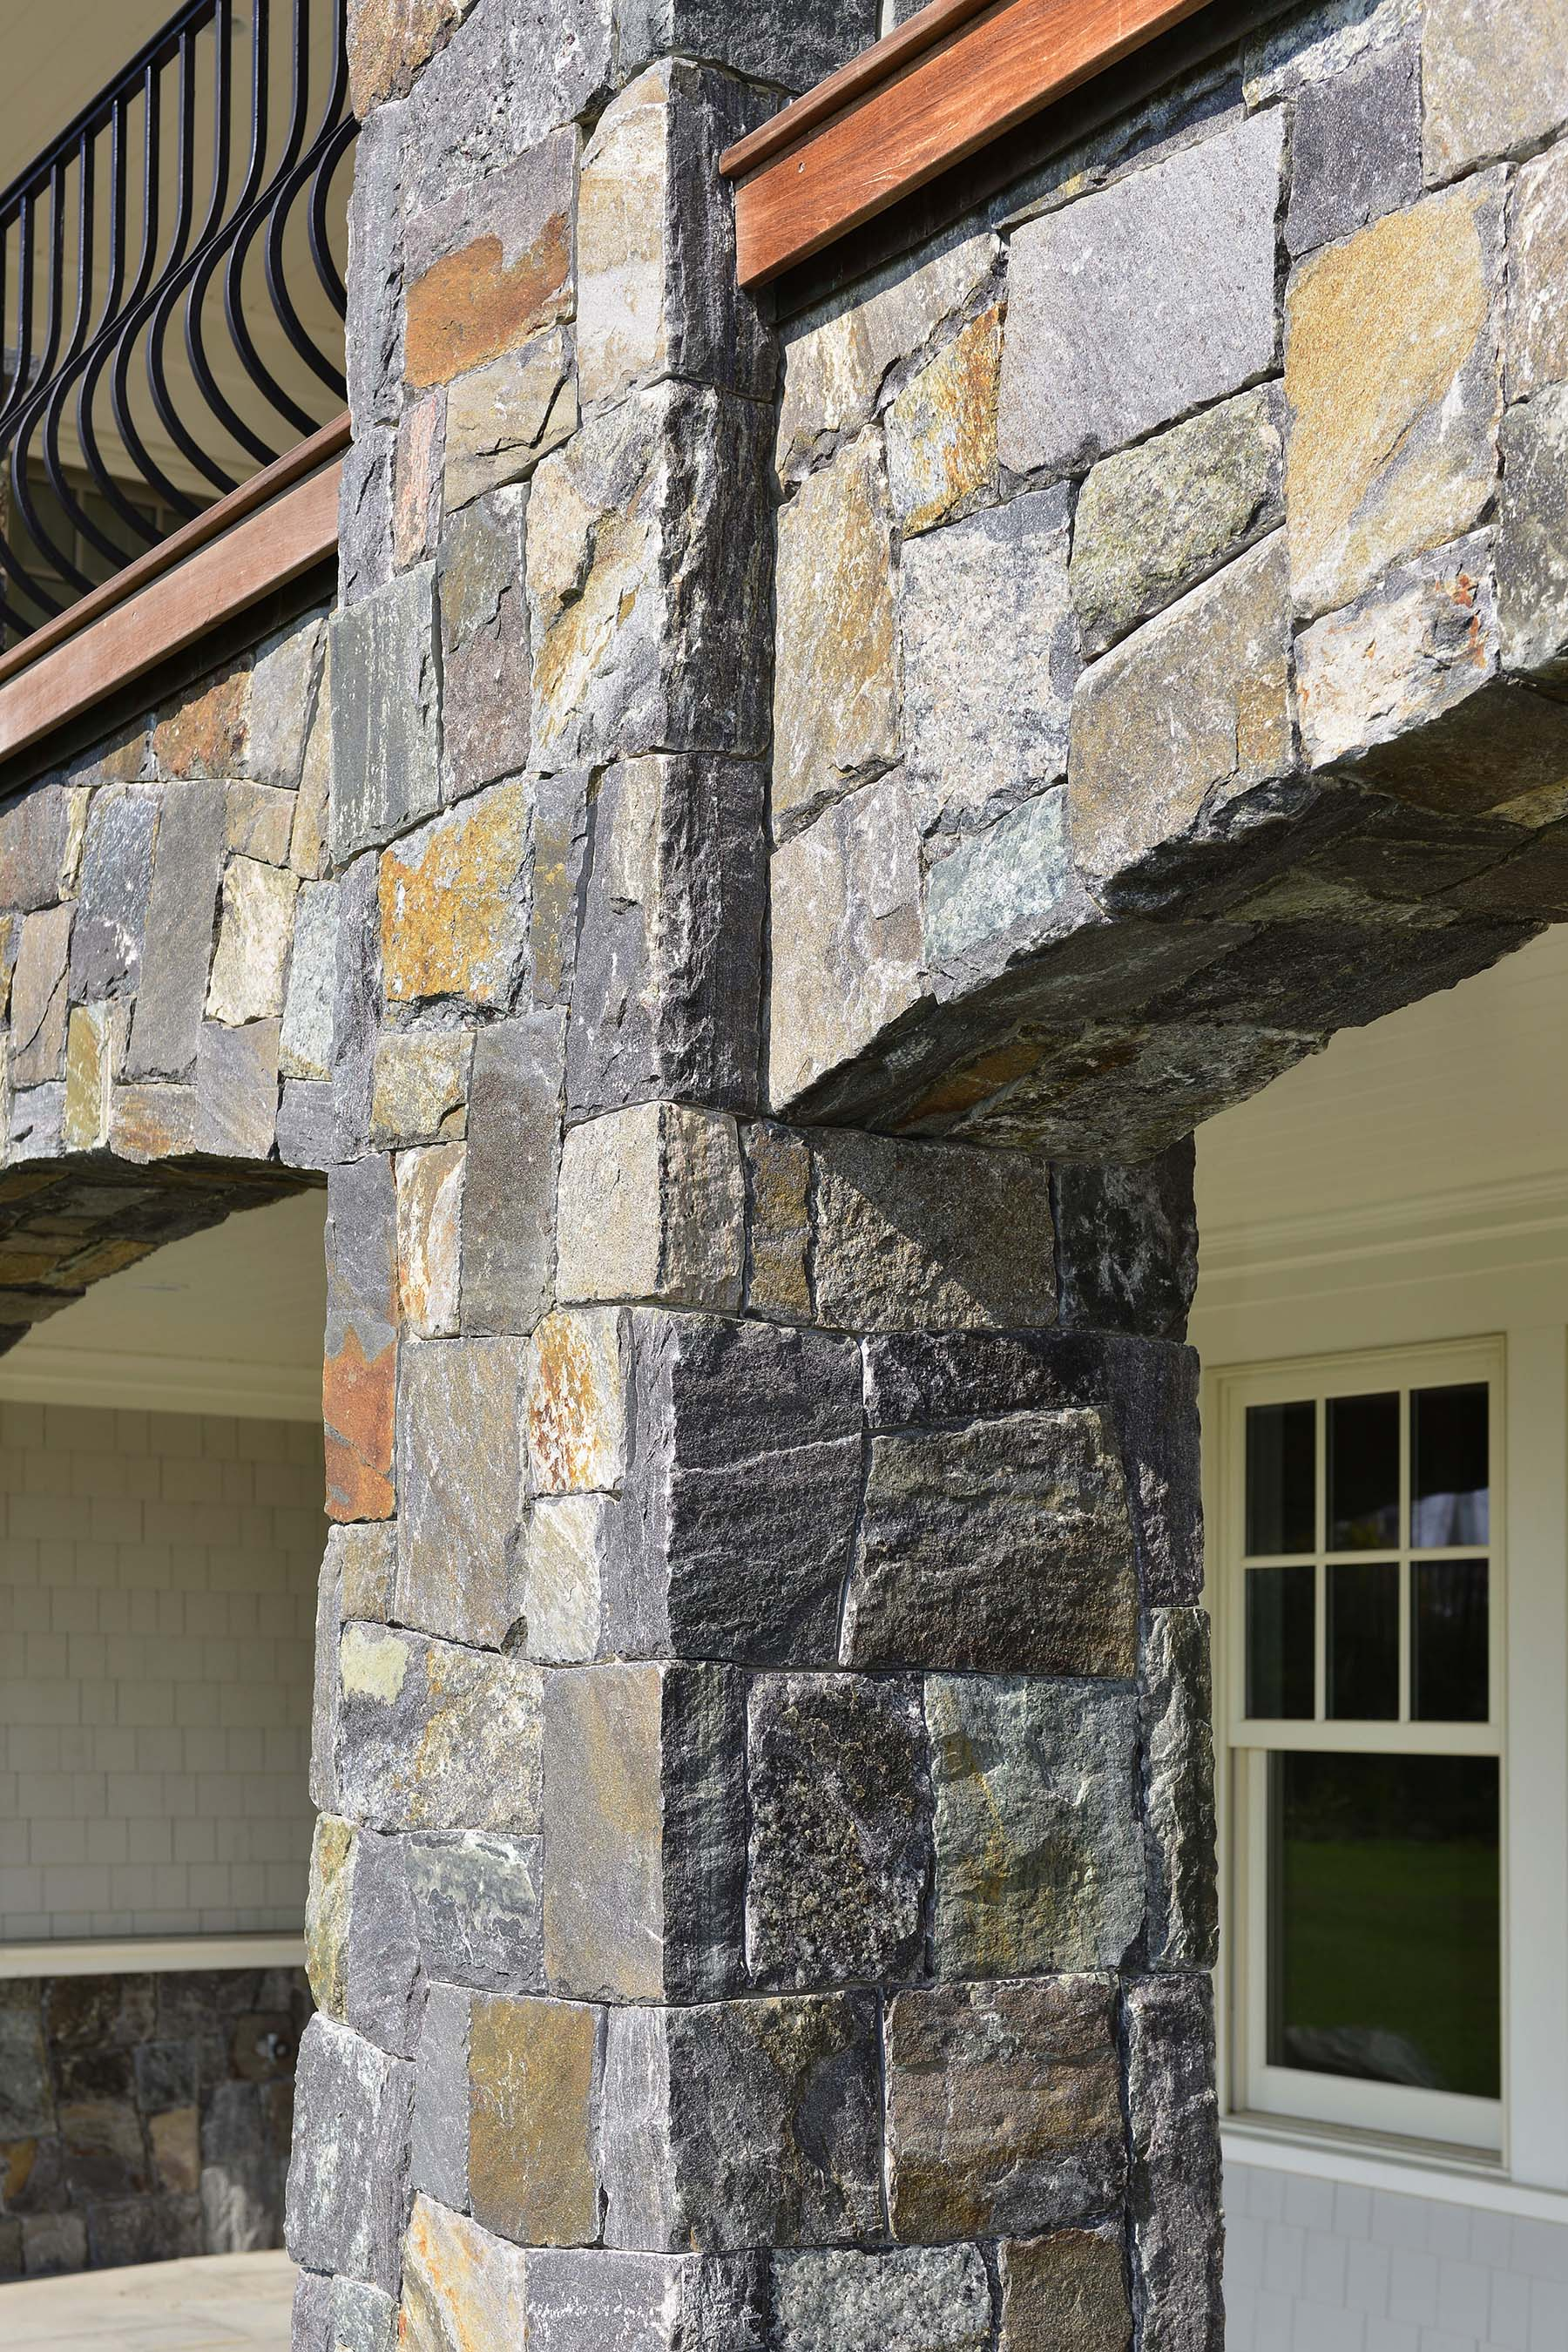 saratoga granite mosaic natural stone column and archway outside